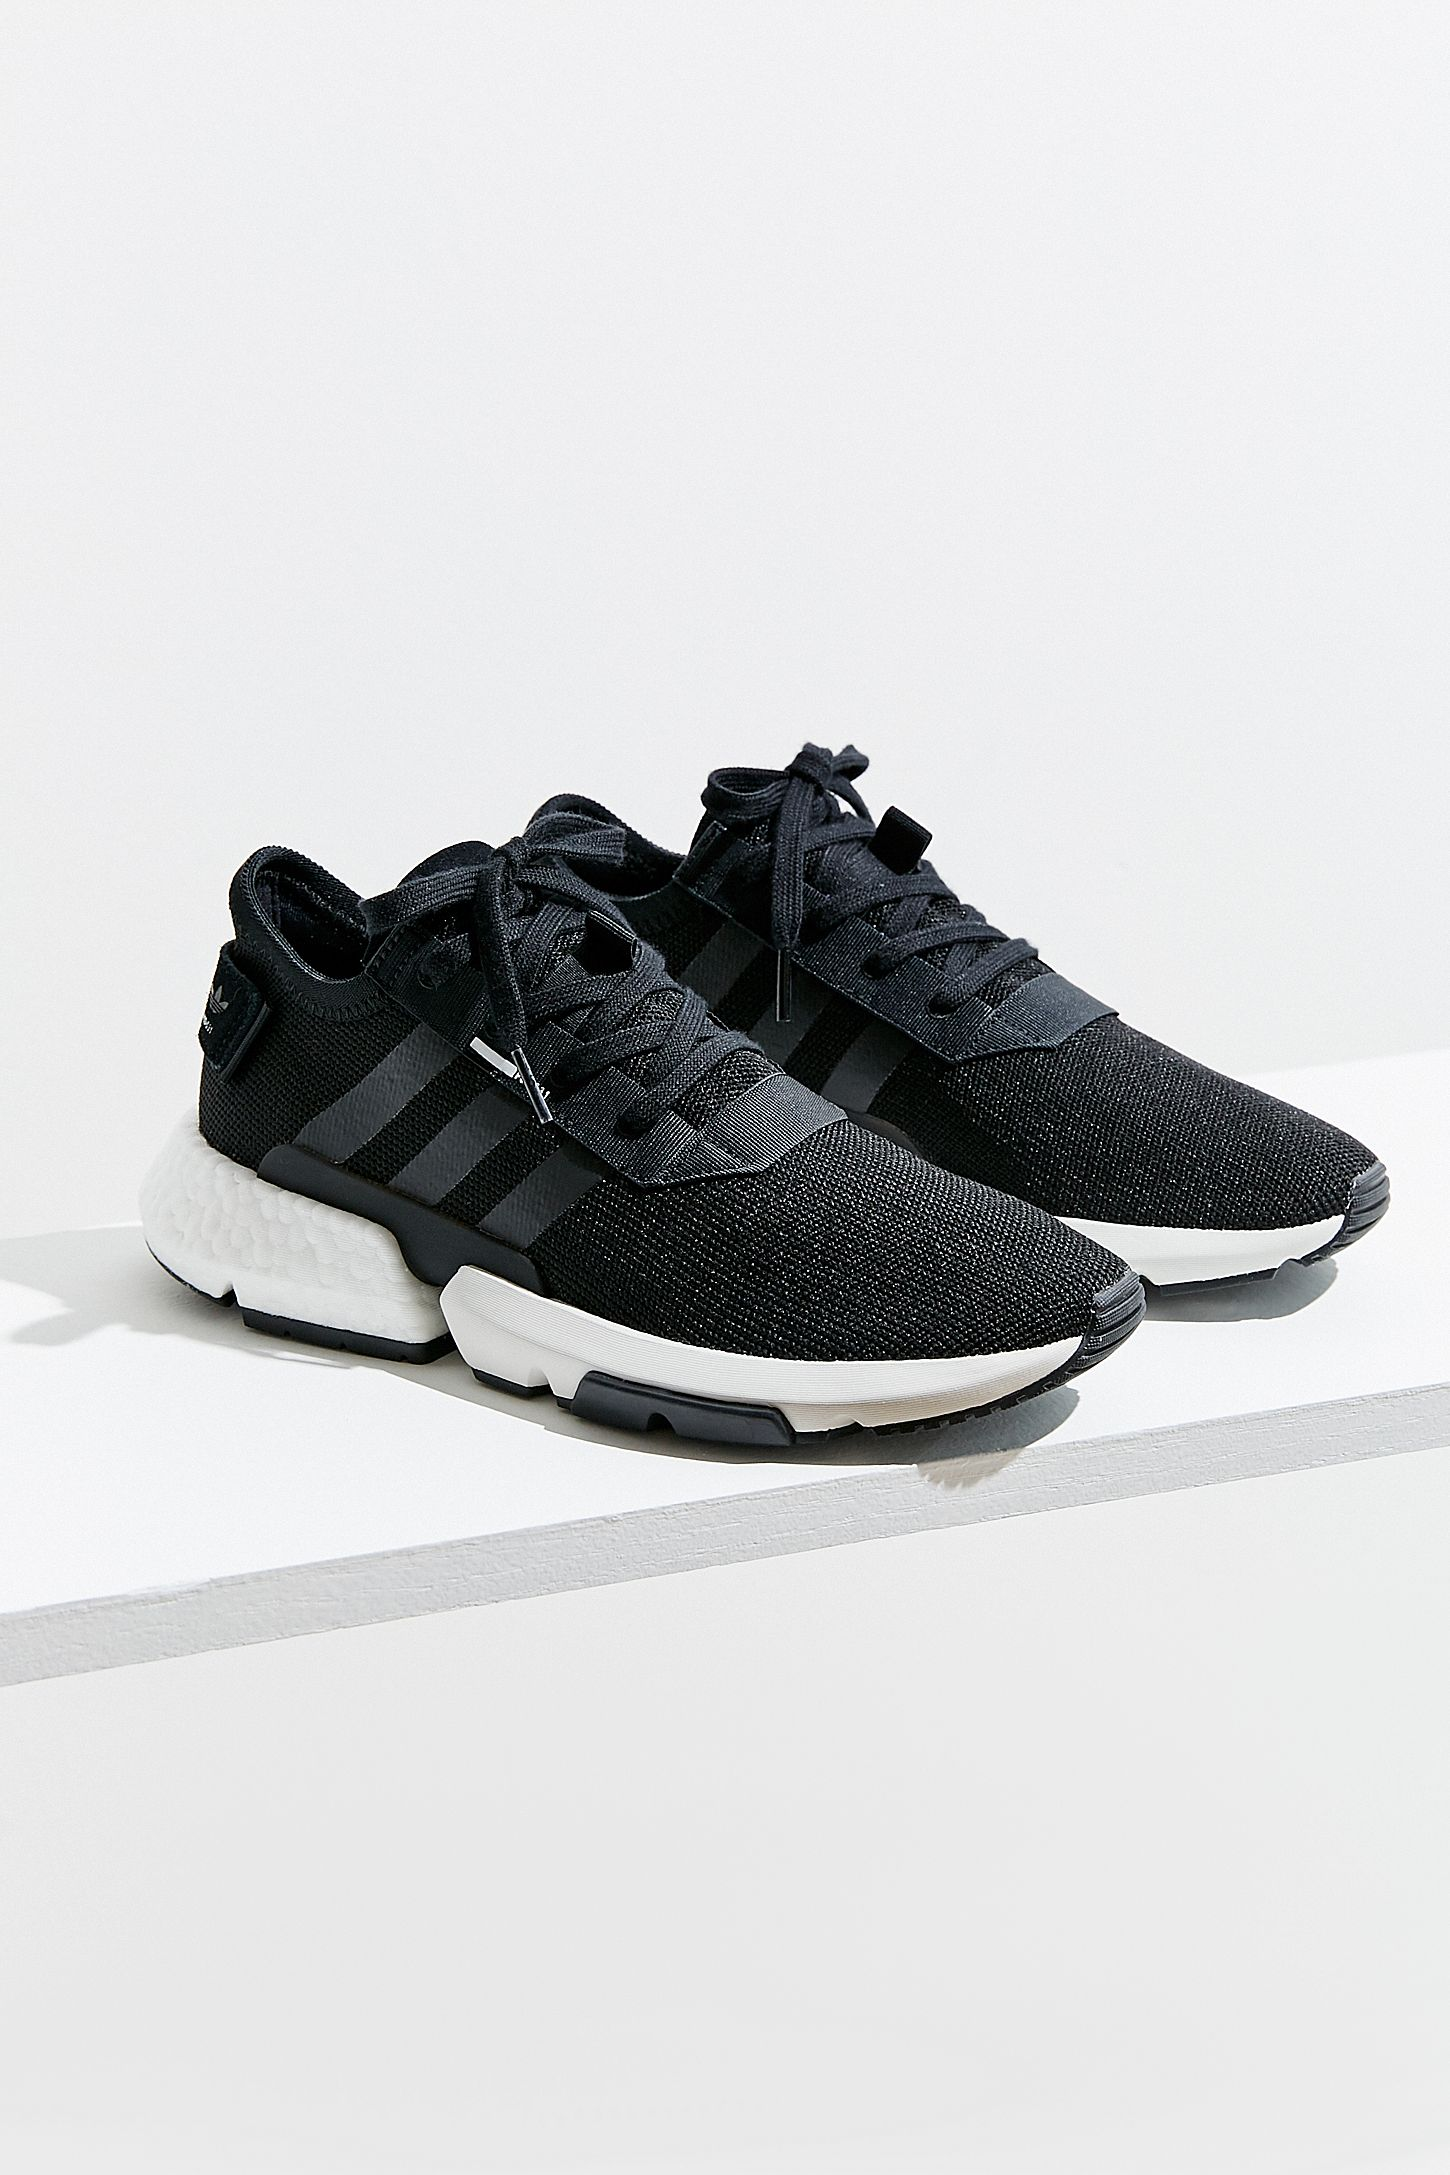 de1dc6e9fc4 adidas Originals P.O.D.-S3.1 Sneaker. Tap image to zoom. Hover to zoom.  Double Tap to Zoom